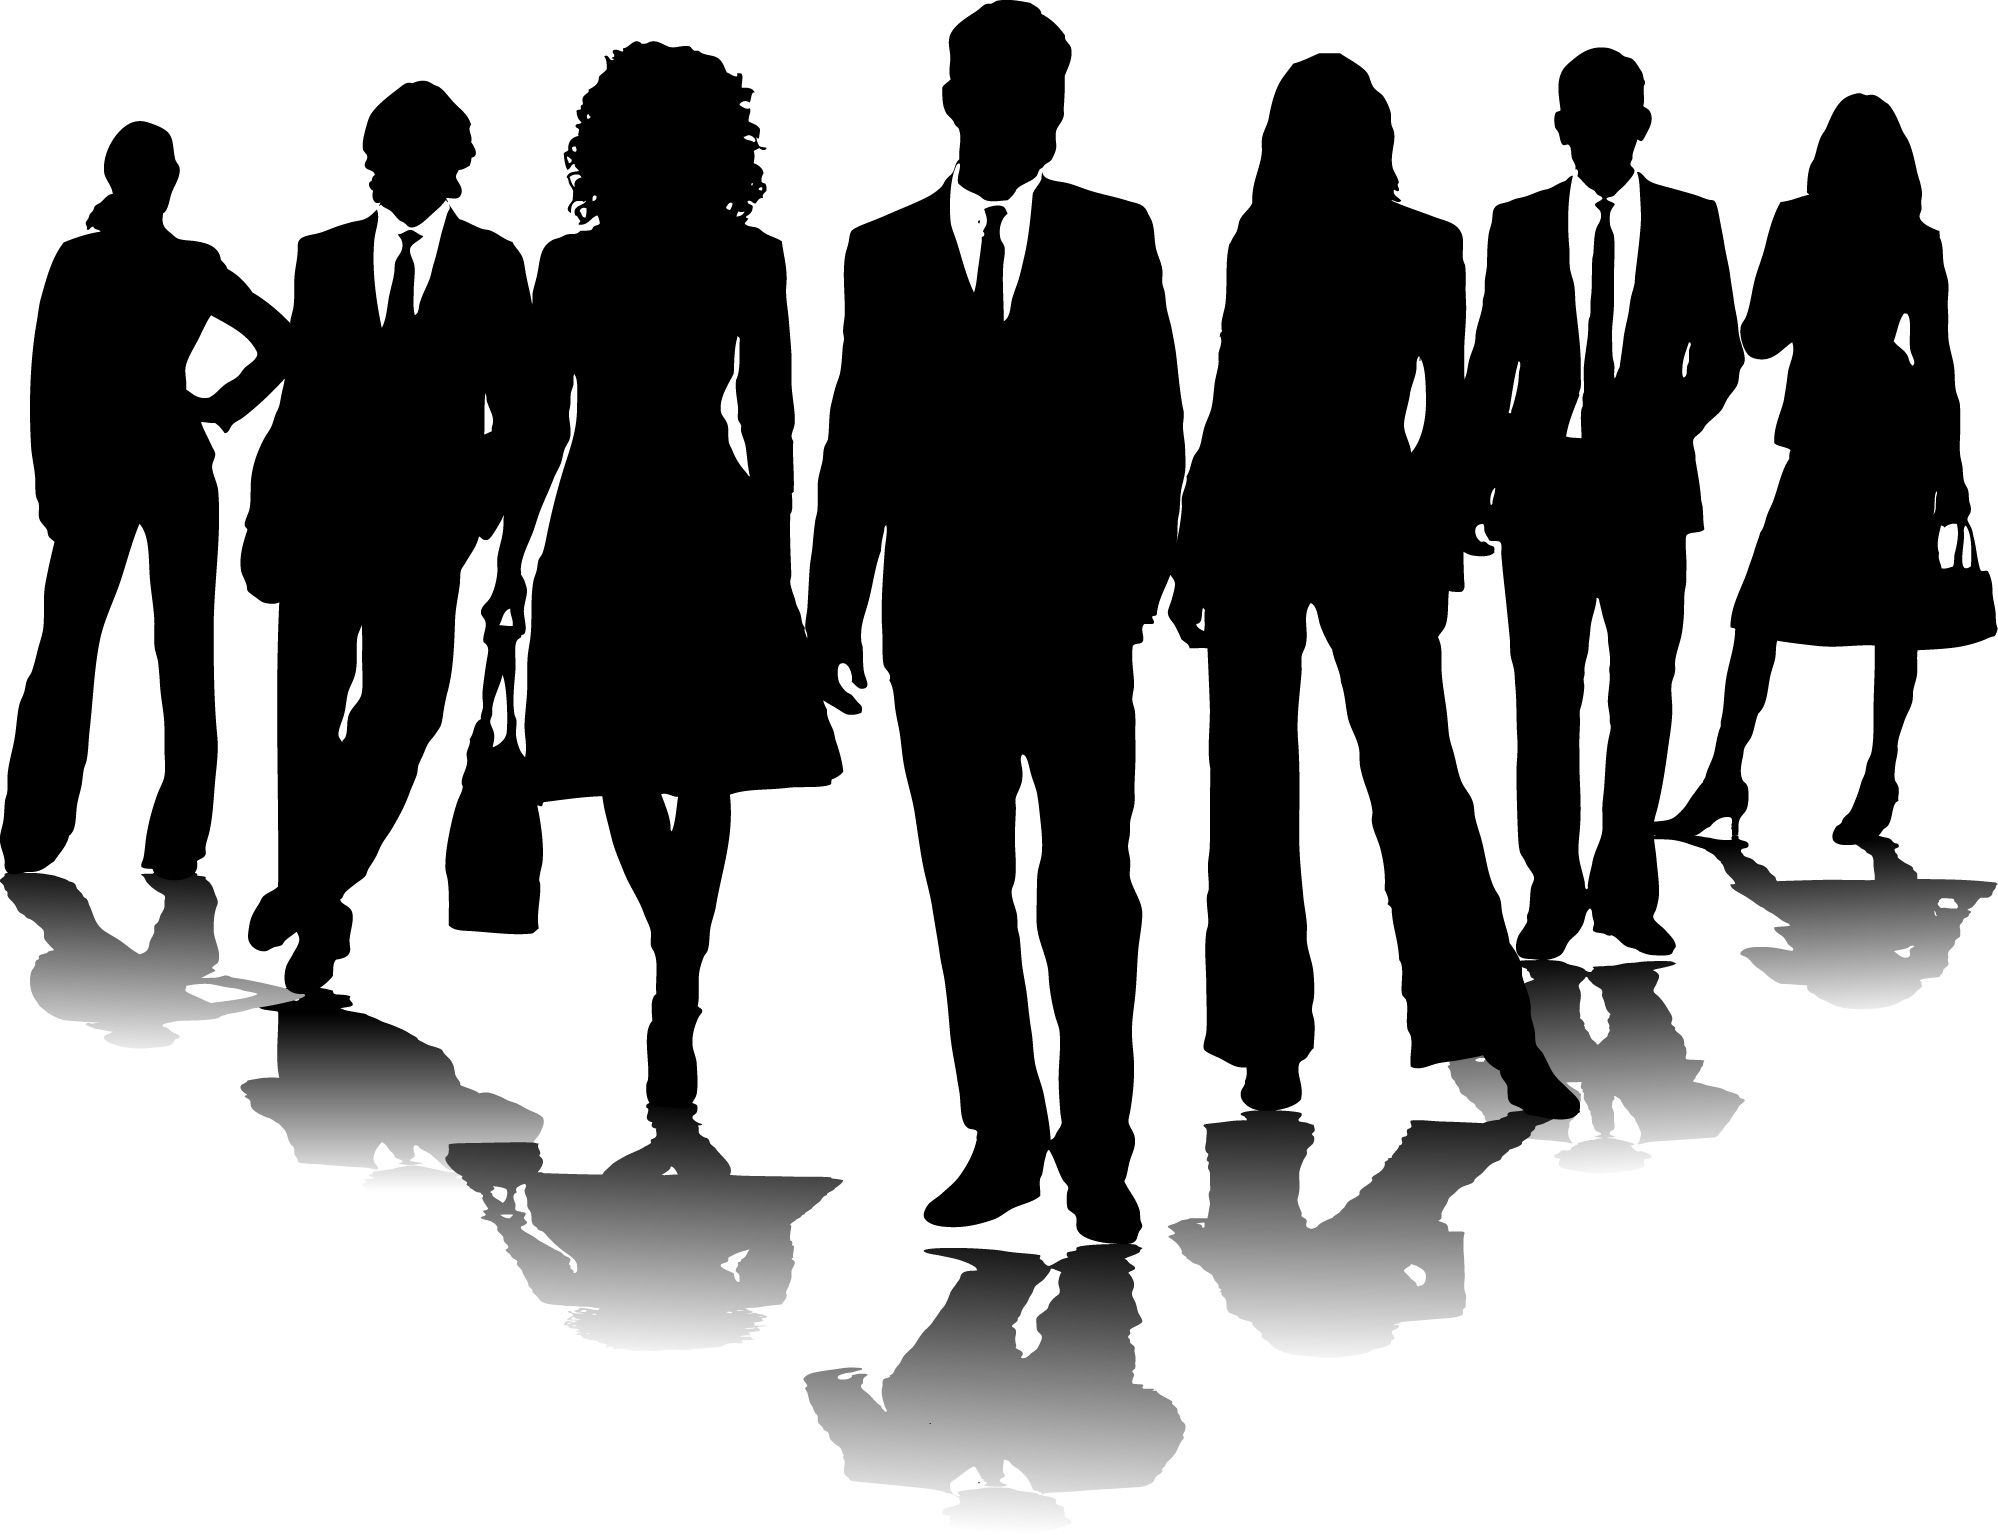 Society clipart Professional (24+) Clip Art people